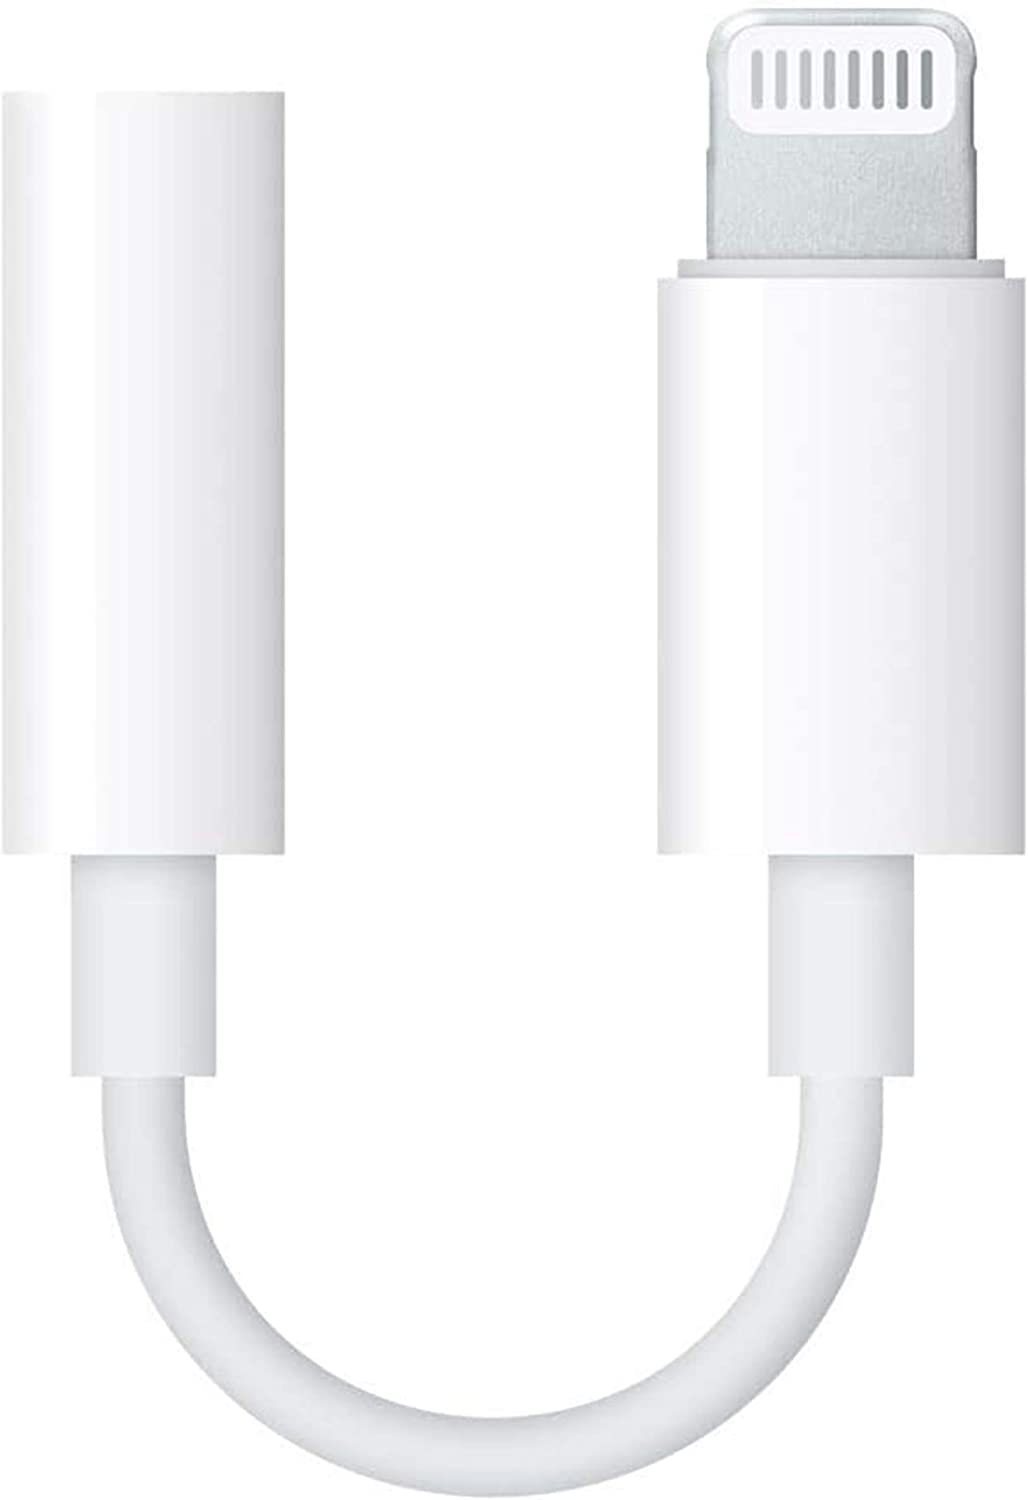 iPhone 12 Headphone Jack Adapter, [Apple MFi Certified] Lightning to 3.5mm Earbuds Headphone Aux Audio Dongle Splitter Jack Adaptor Compatible for iPhone 12/12 Mini/12 Pro/11/11 Pro/X/XR/XS/XS Max/8/7